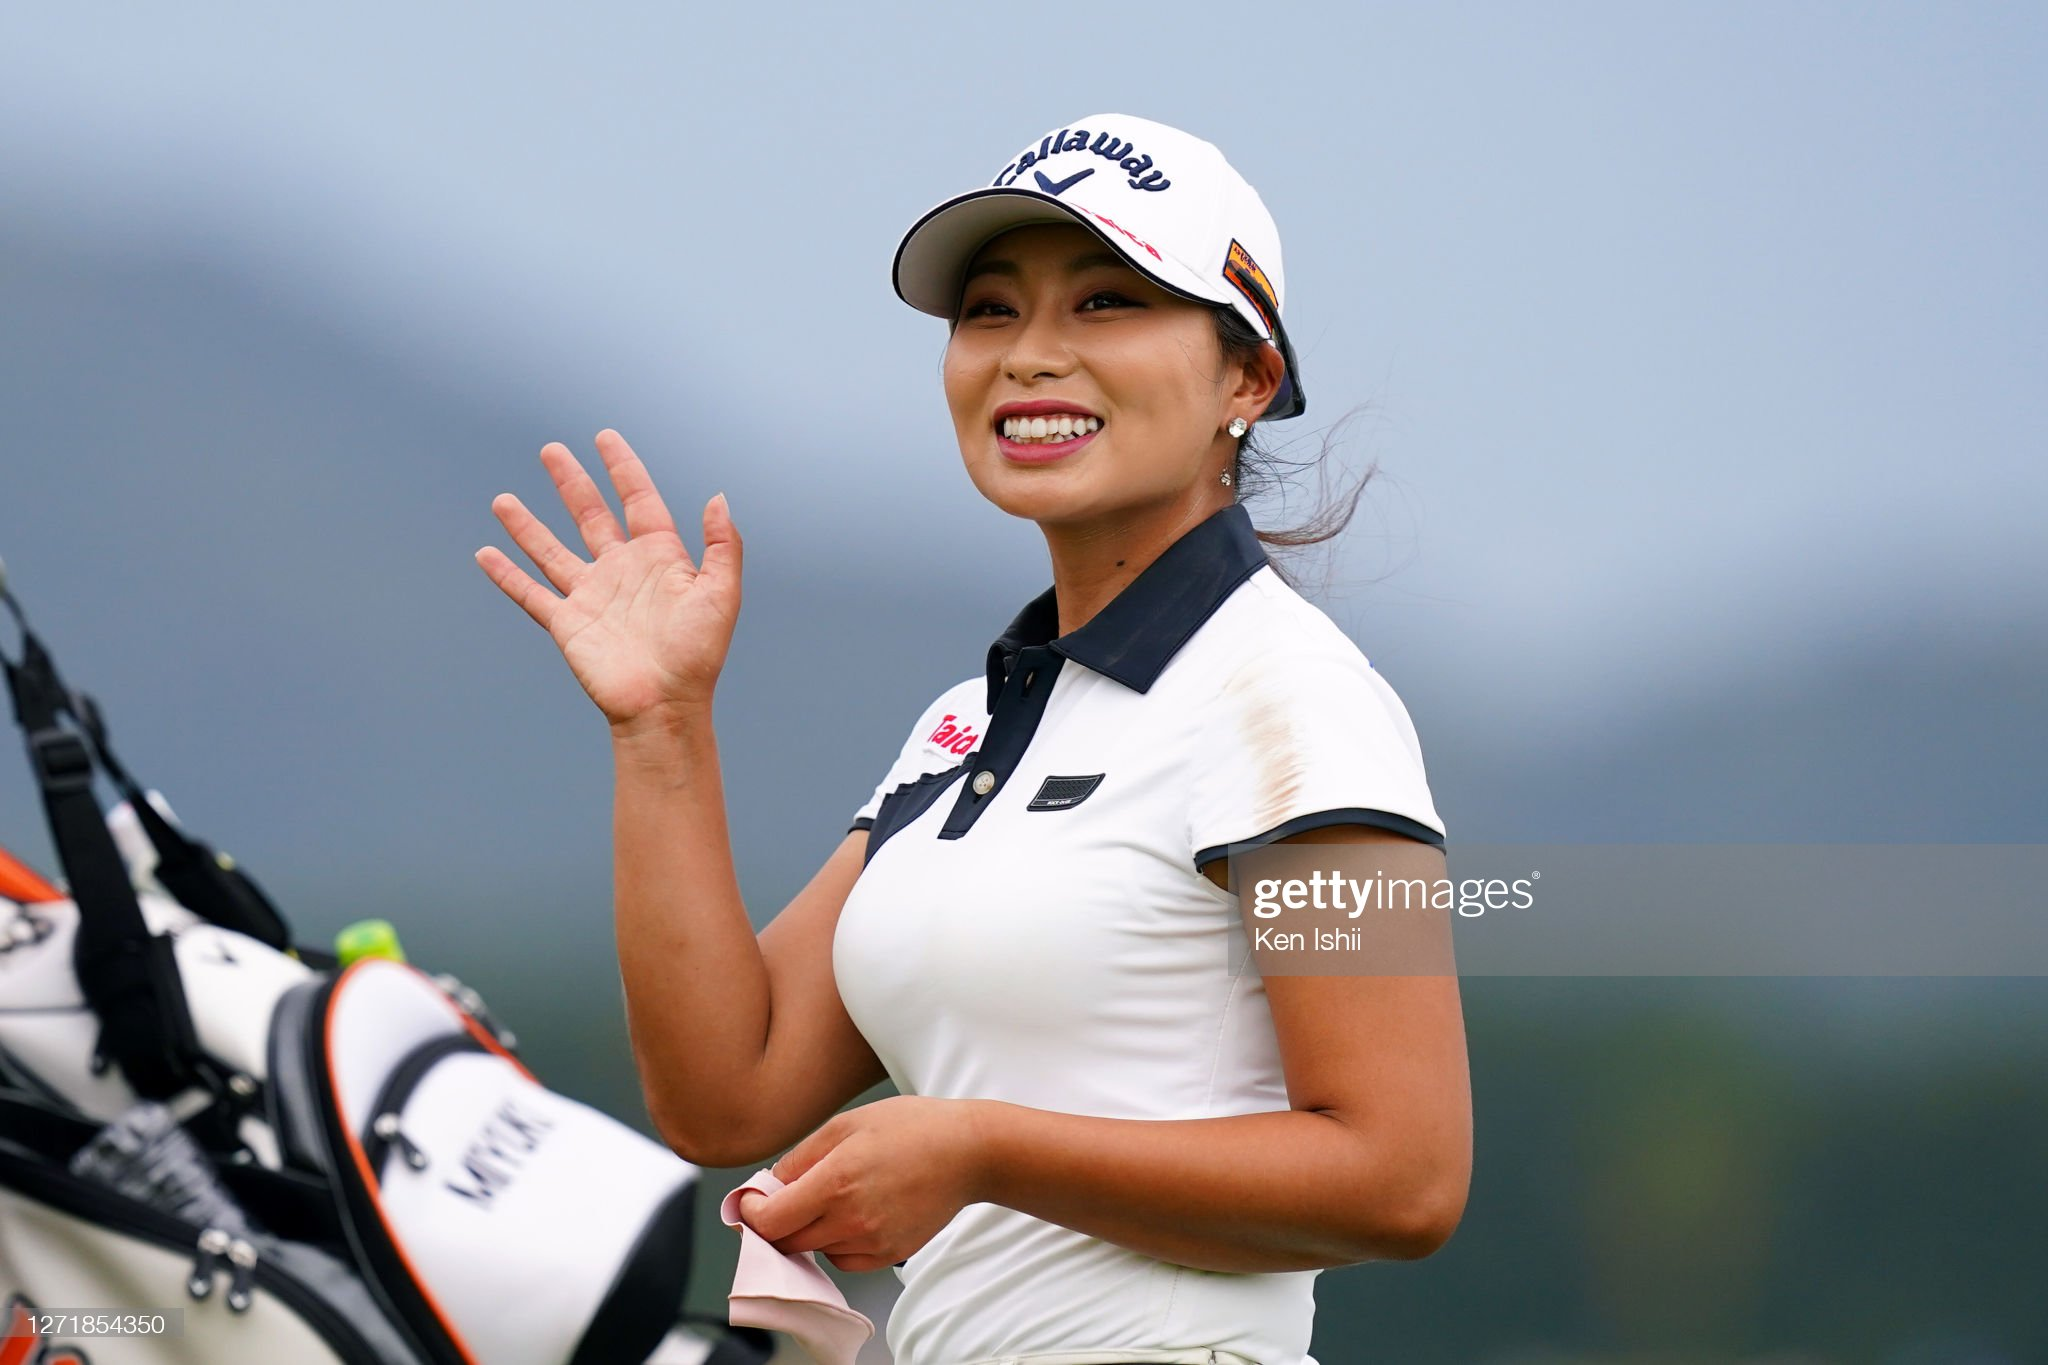 https://media.gettyimages.com/photos/miyuki-takeuchi-of-japan-waves-after-holing-out-on-the-9th-green-the-picture-id1271854350?s=2048x2048